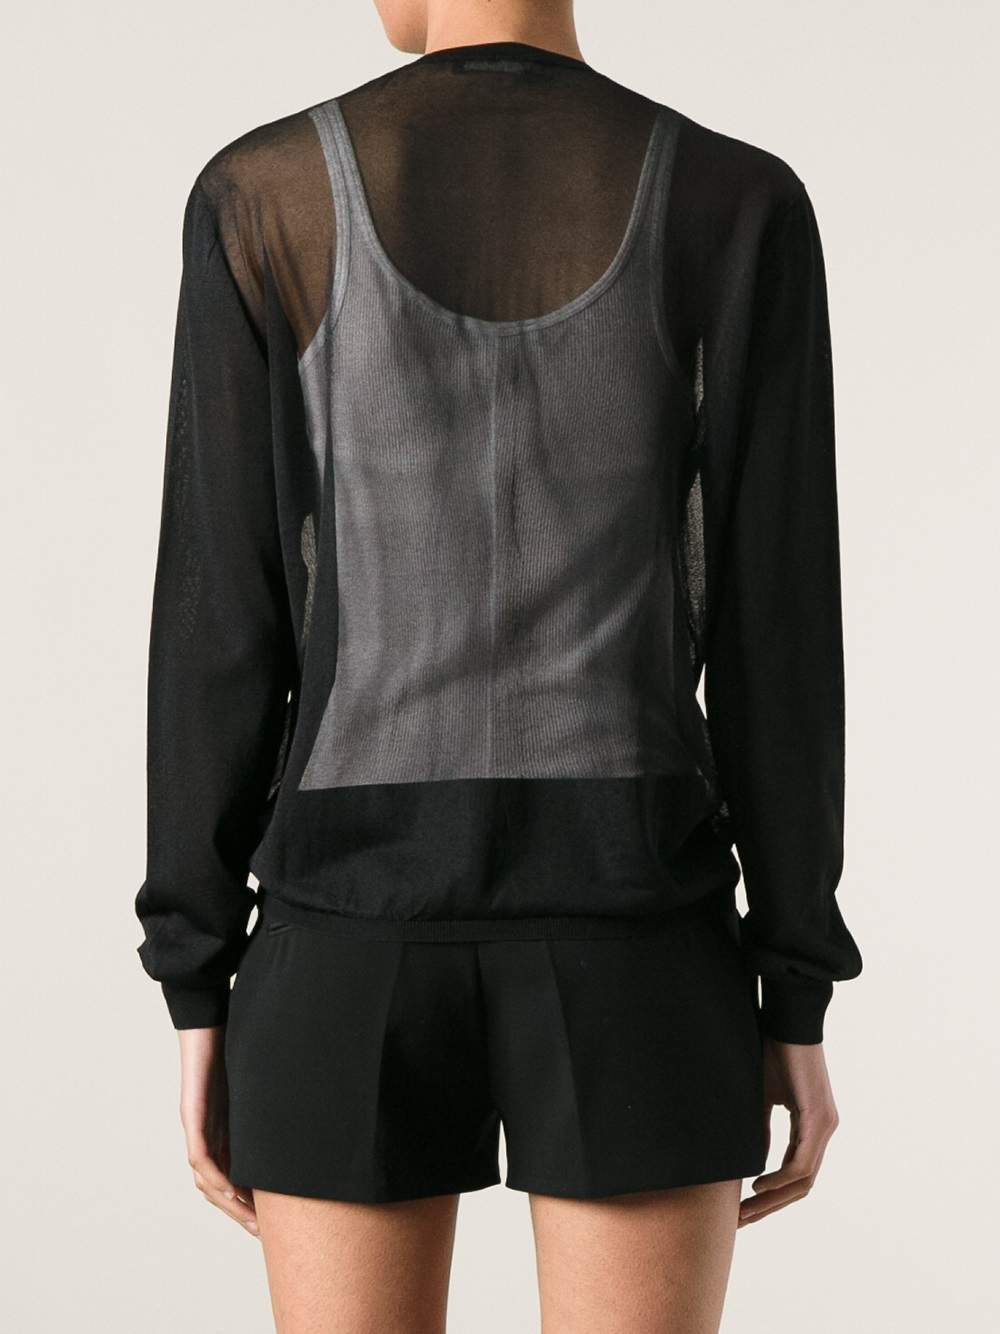 Dsquared² Sheer Cardigan in Black   Lyst